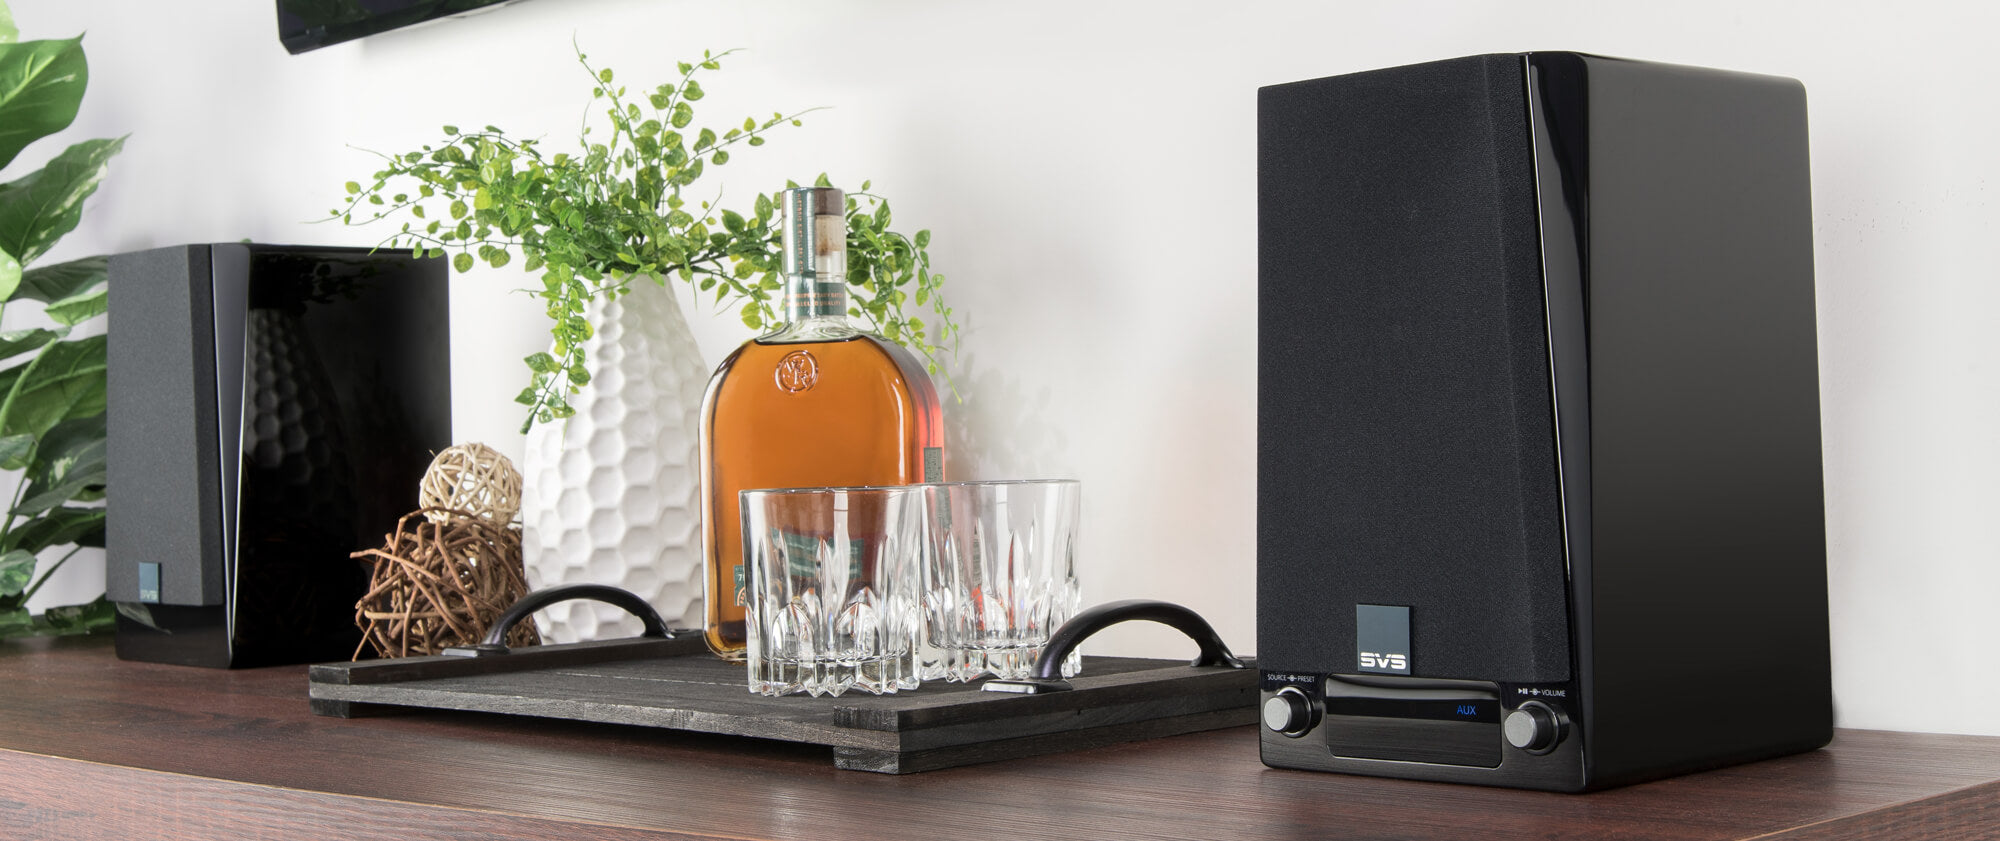 Prime Wireless Speaker System. Links to the Prime Wireless Speaker System page.